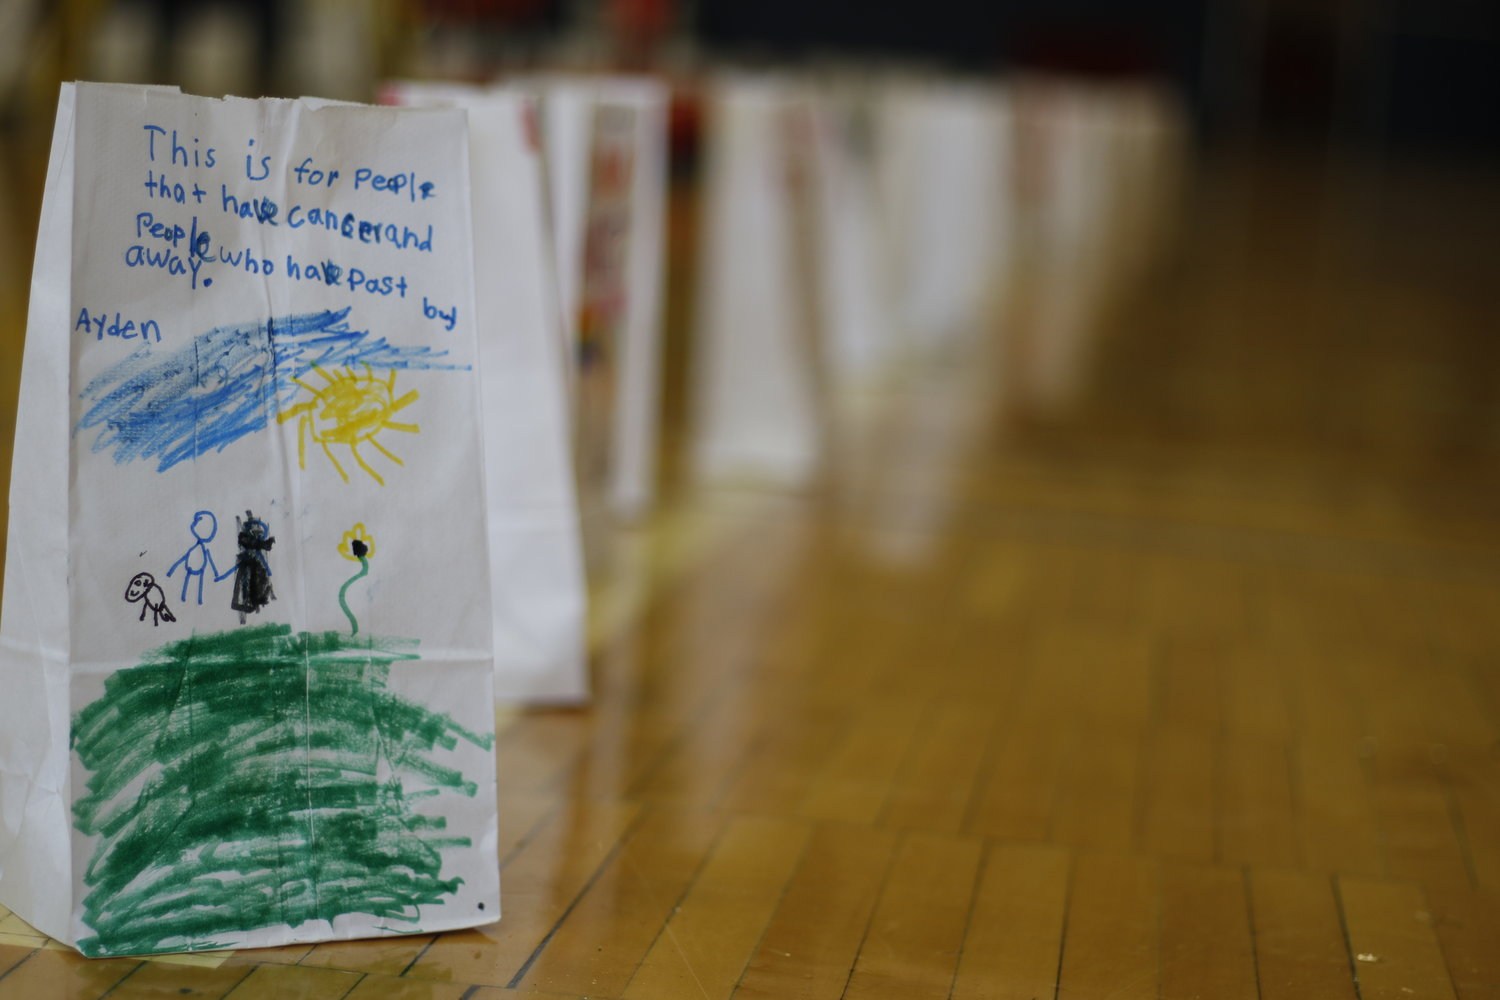 Like last year, participants will make luminaria bags and dedicate them to those who have been affected by cancer.